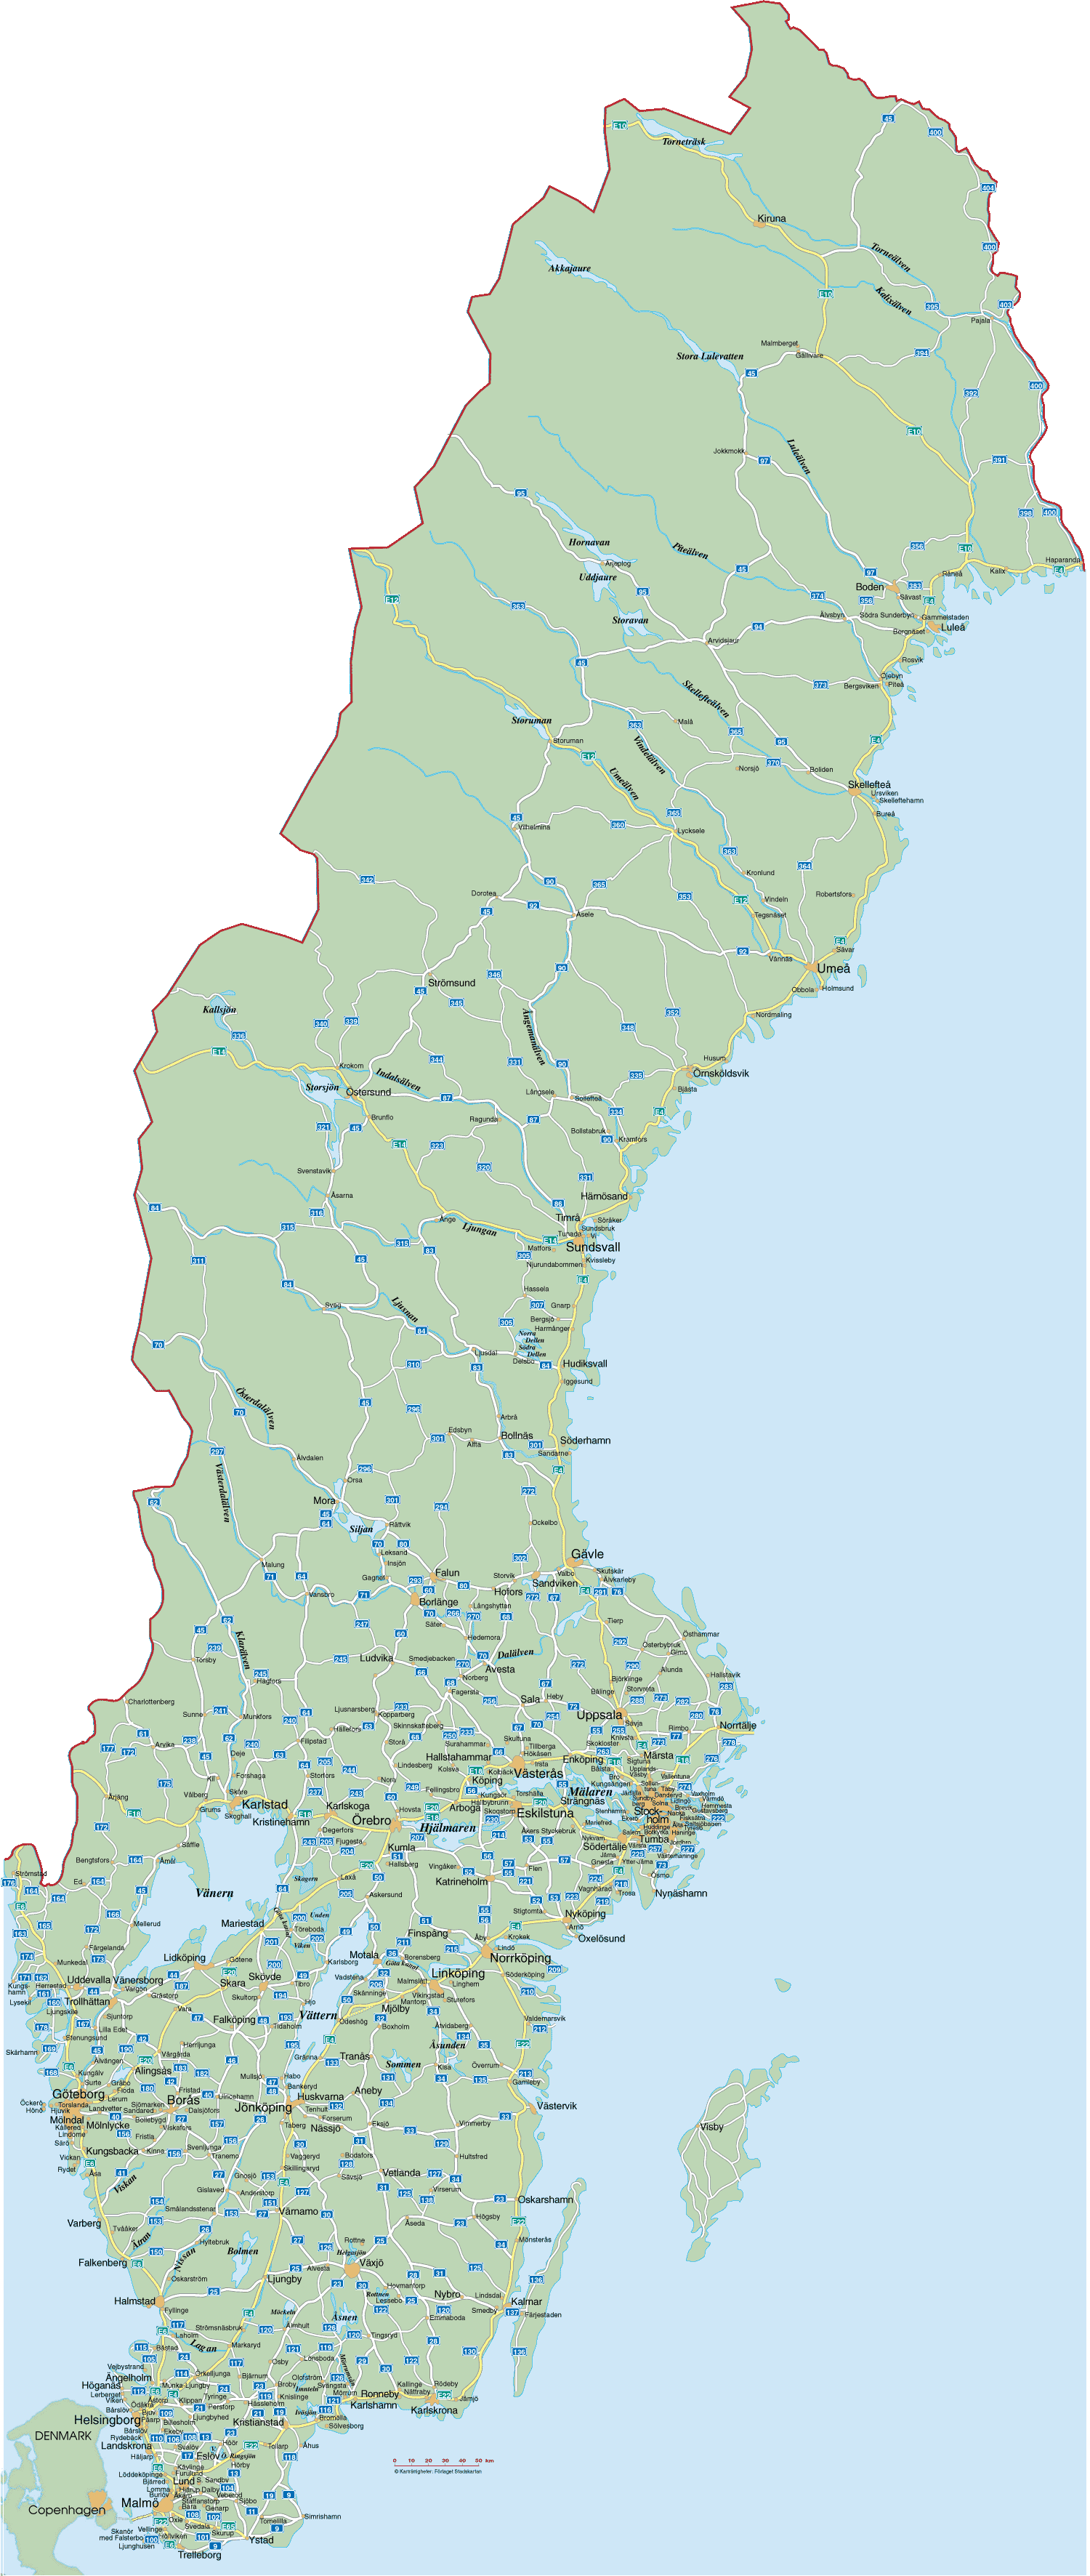 Sweden Map Search Results Mapsofnet - Sweden map search